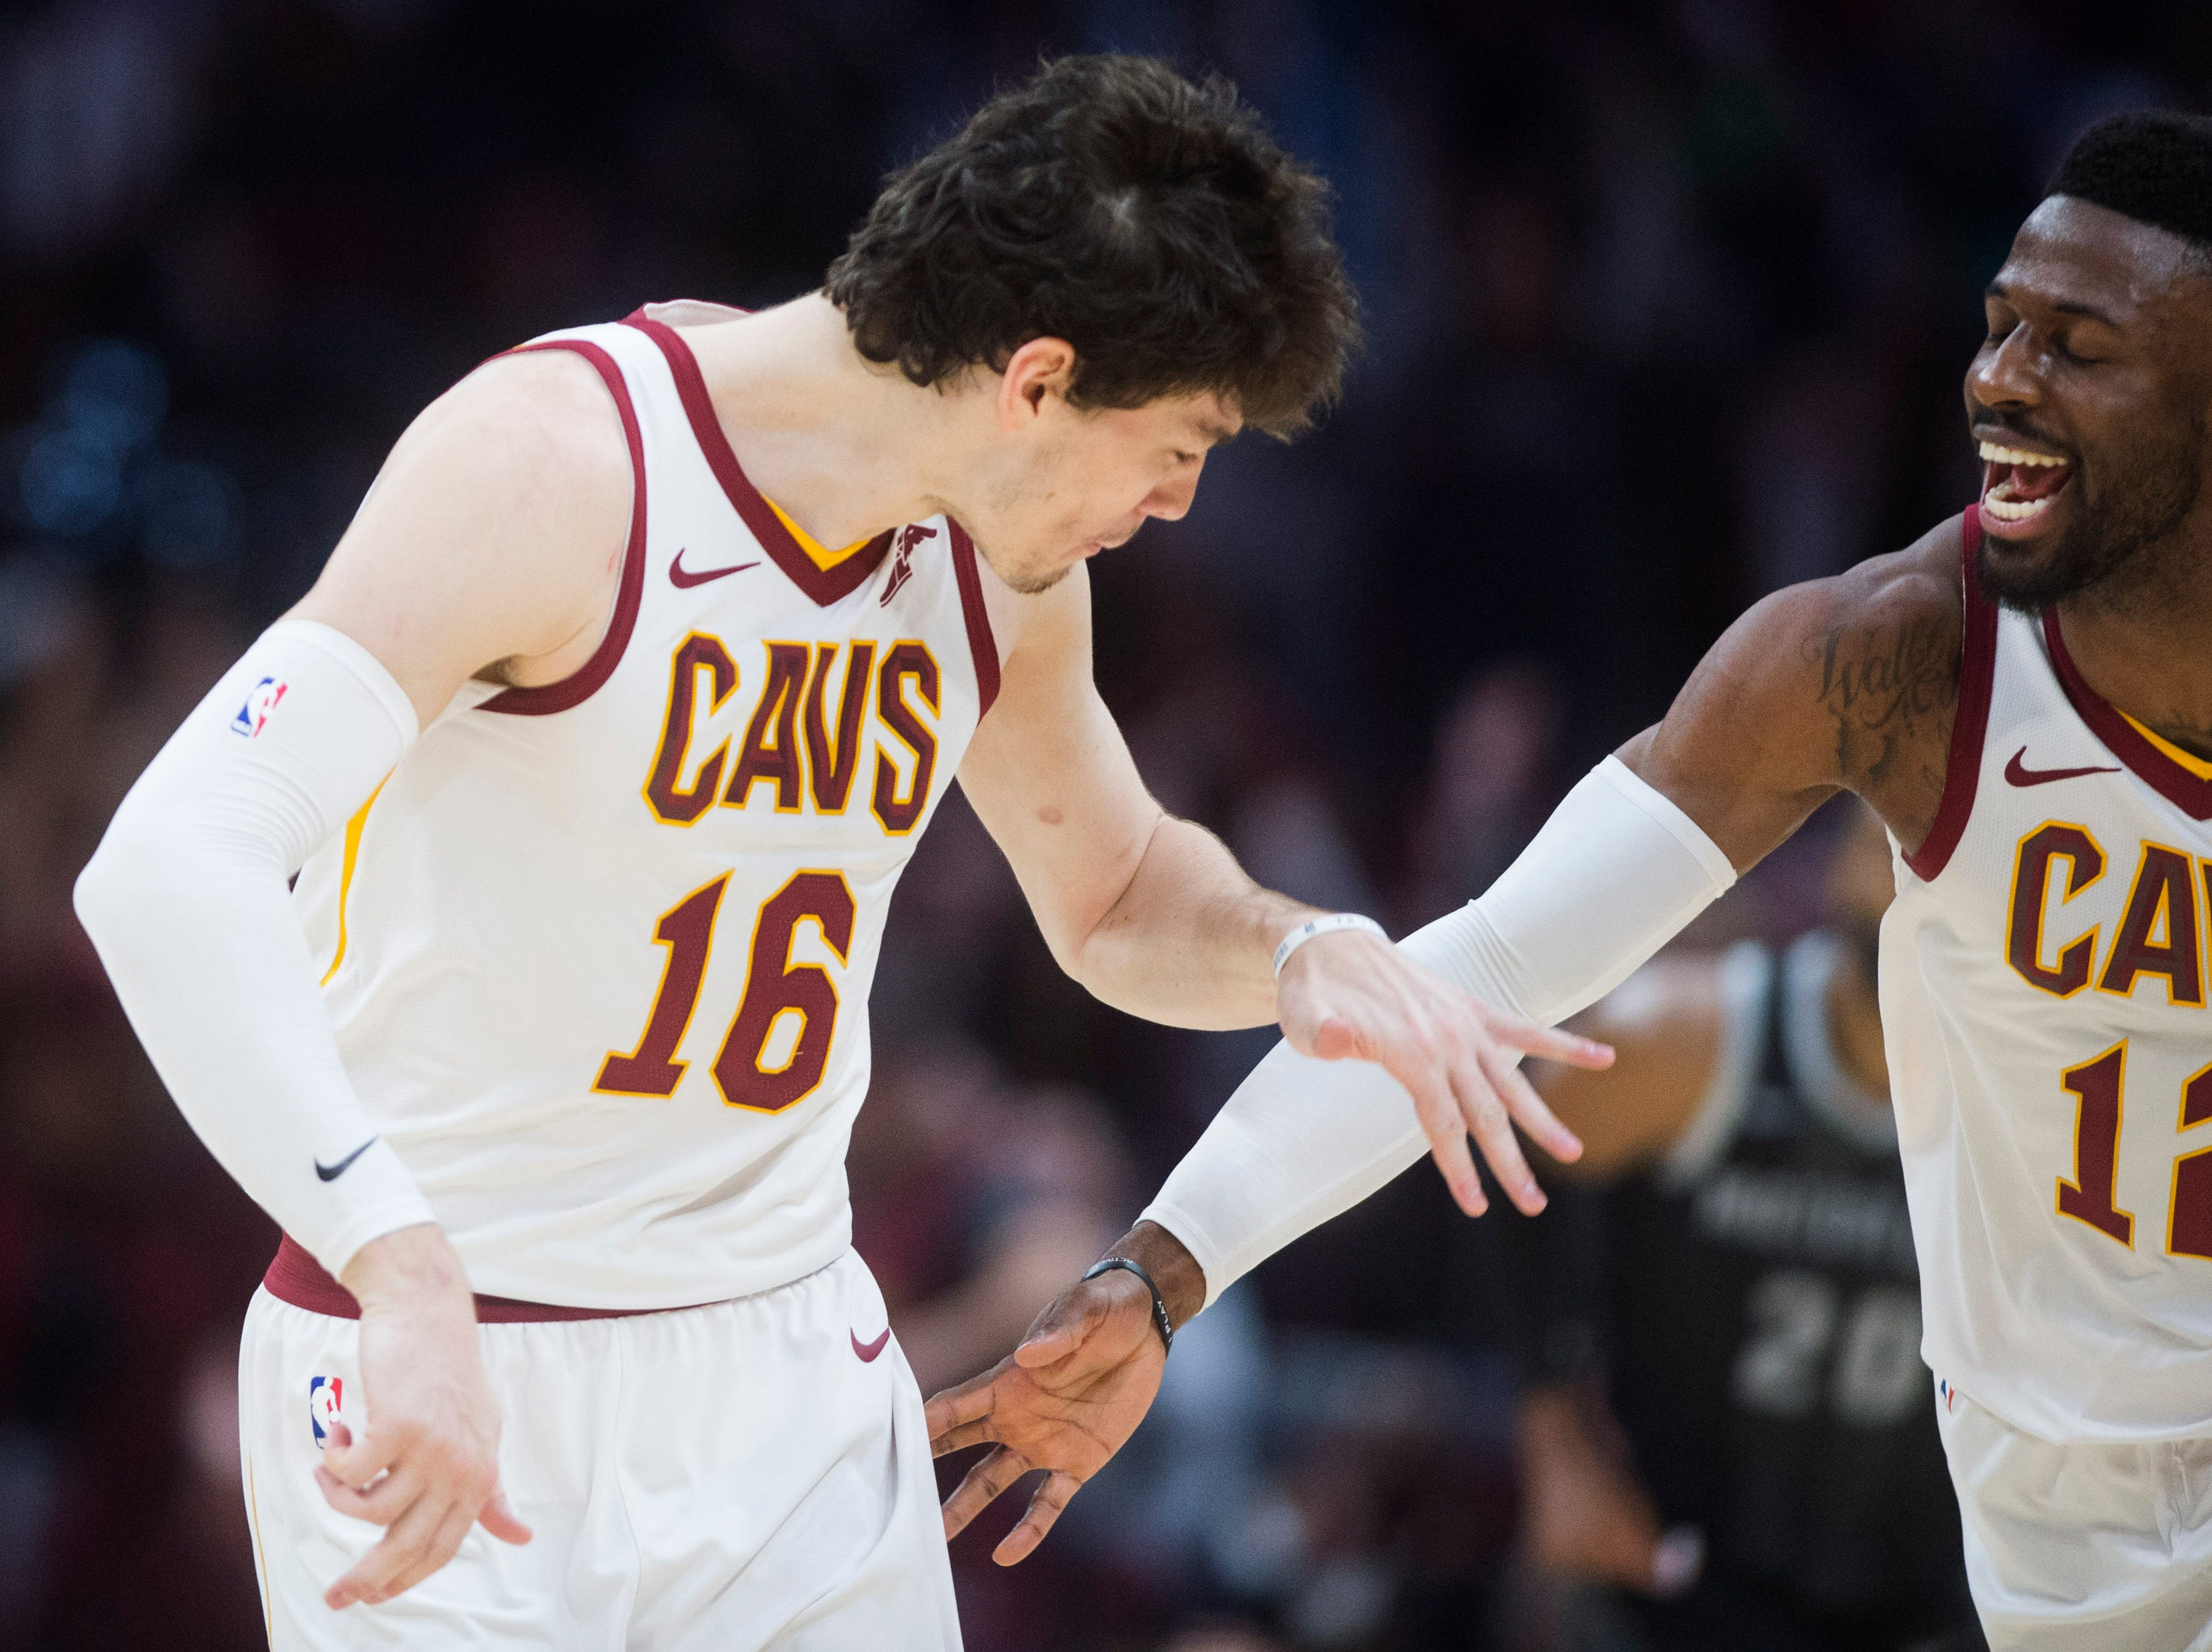 Cleveland Cavaliers' forward Cedi Osman, from Turkey, celebrates with guard David Nwaba after hitting a three-point basket in the second half of an NBA basketball game.